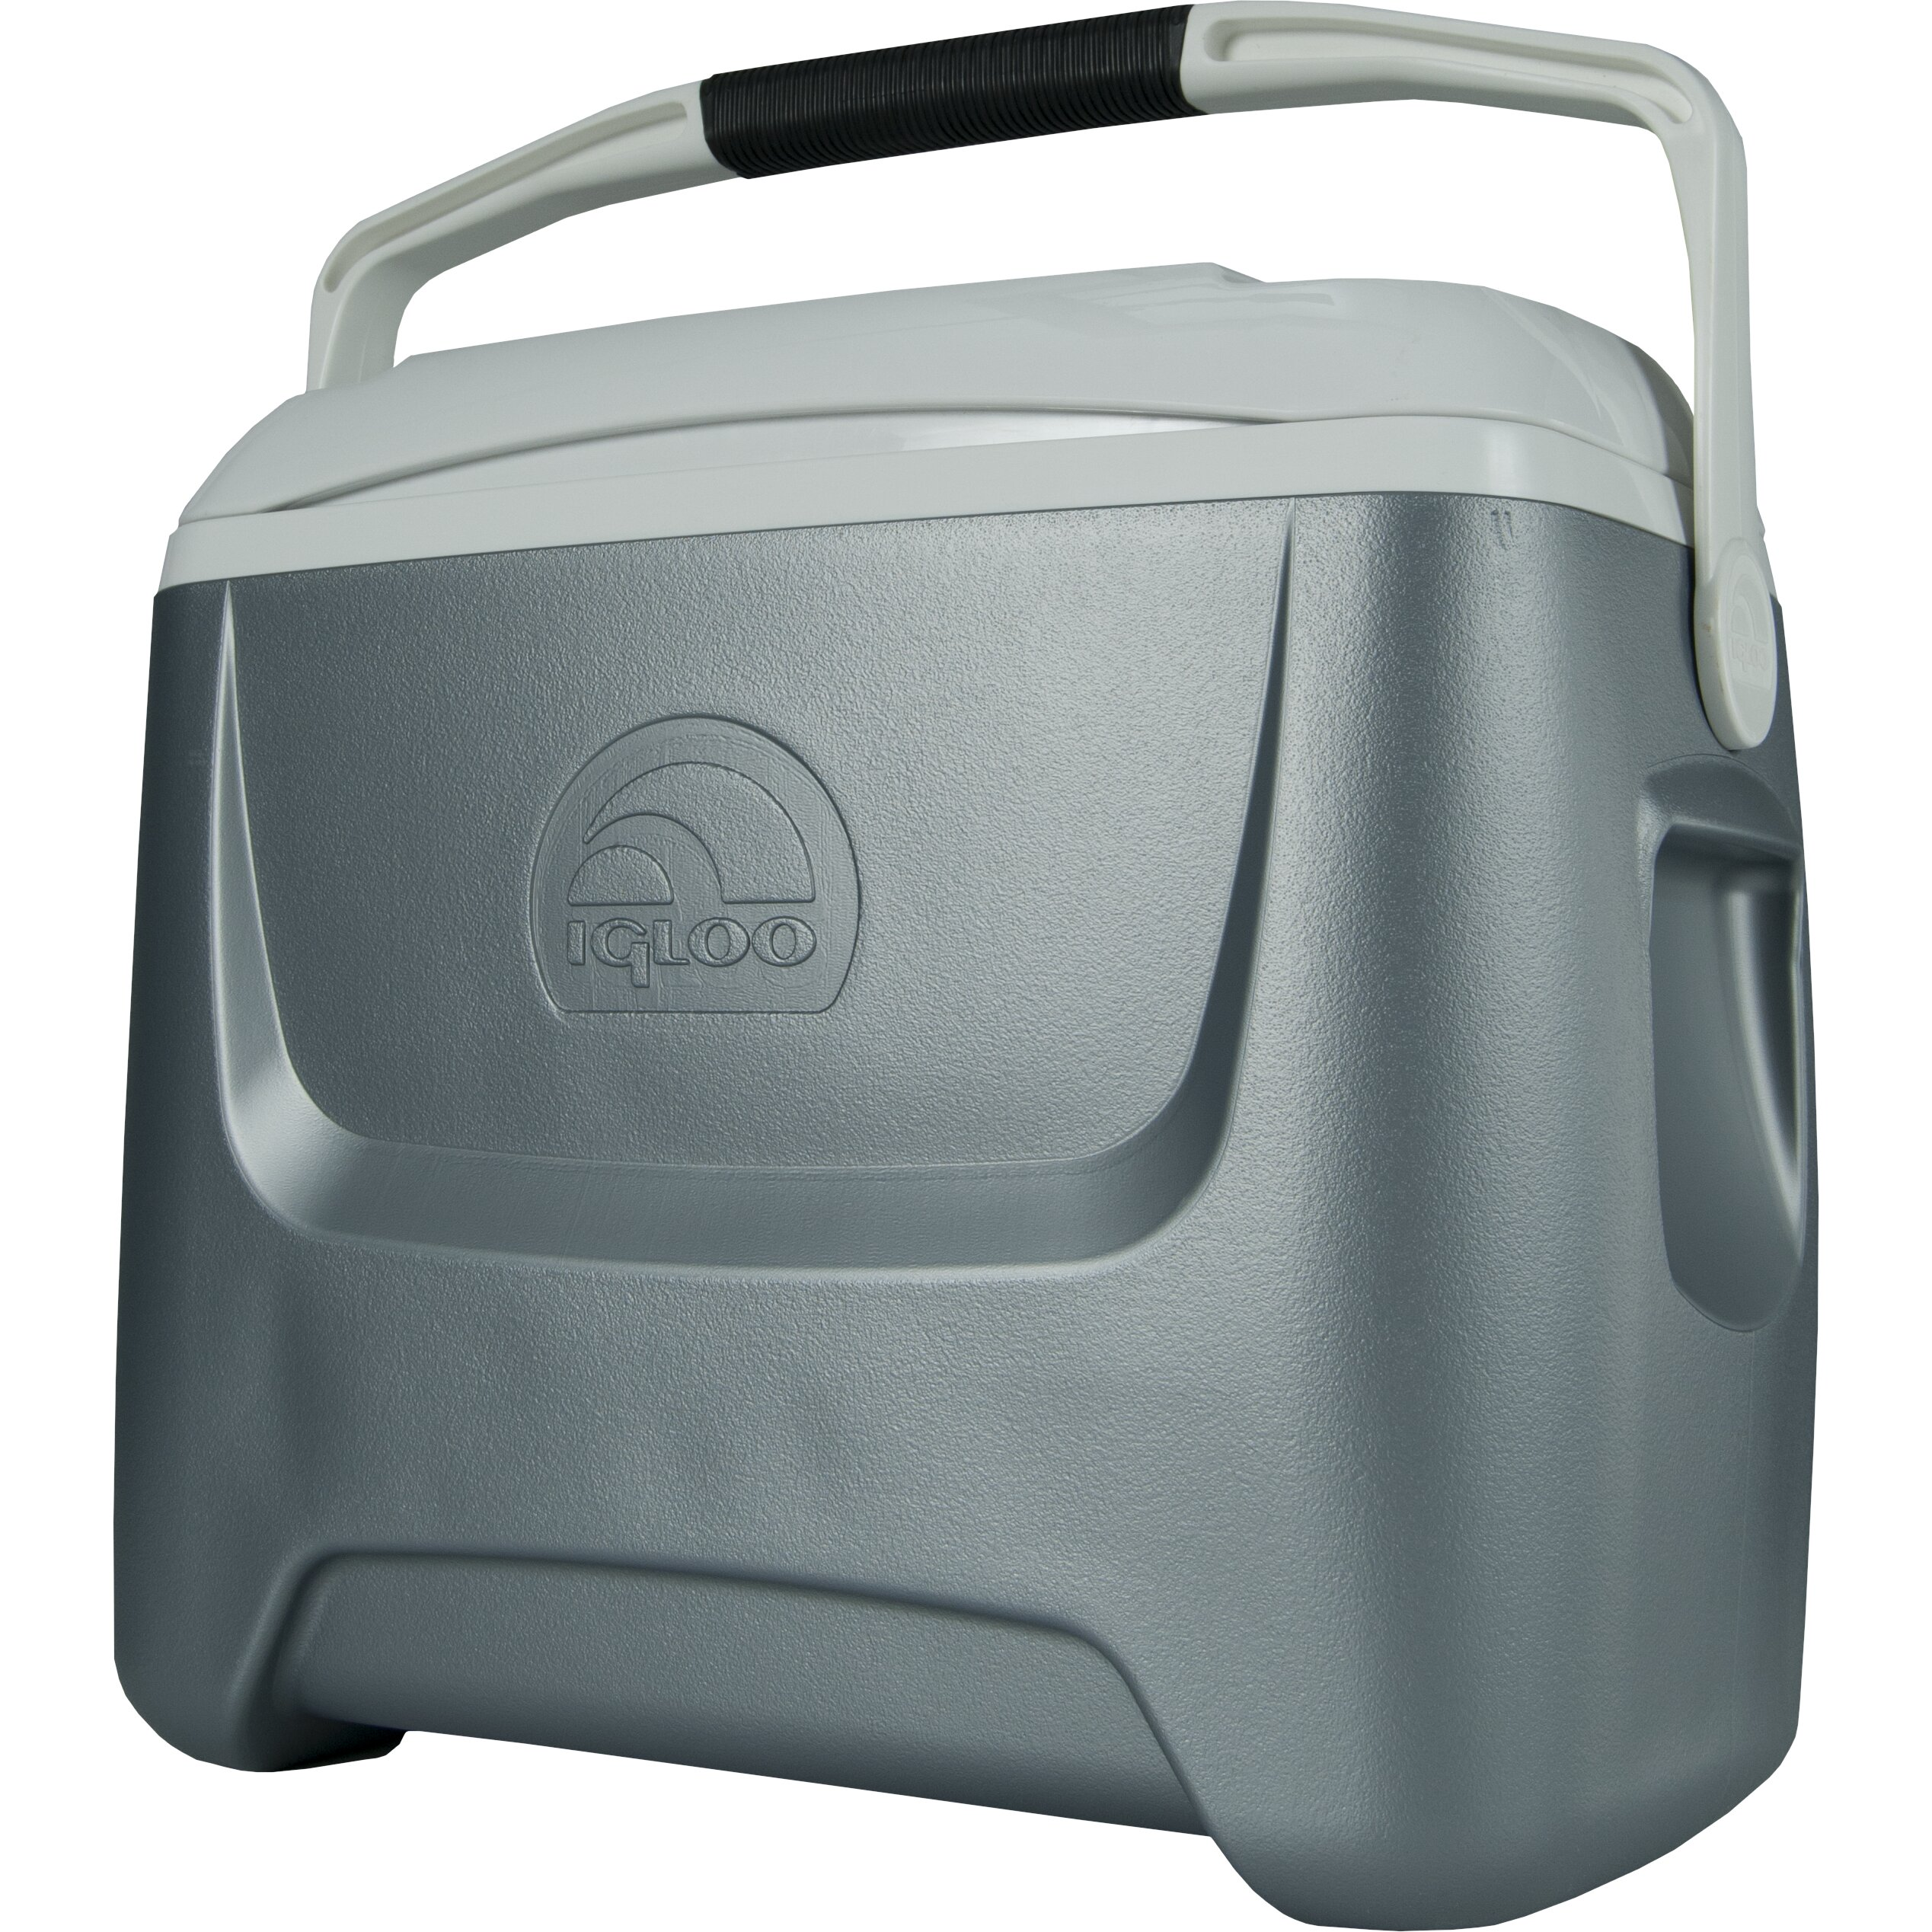 igloo iceless thermoelectric cooler manual